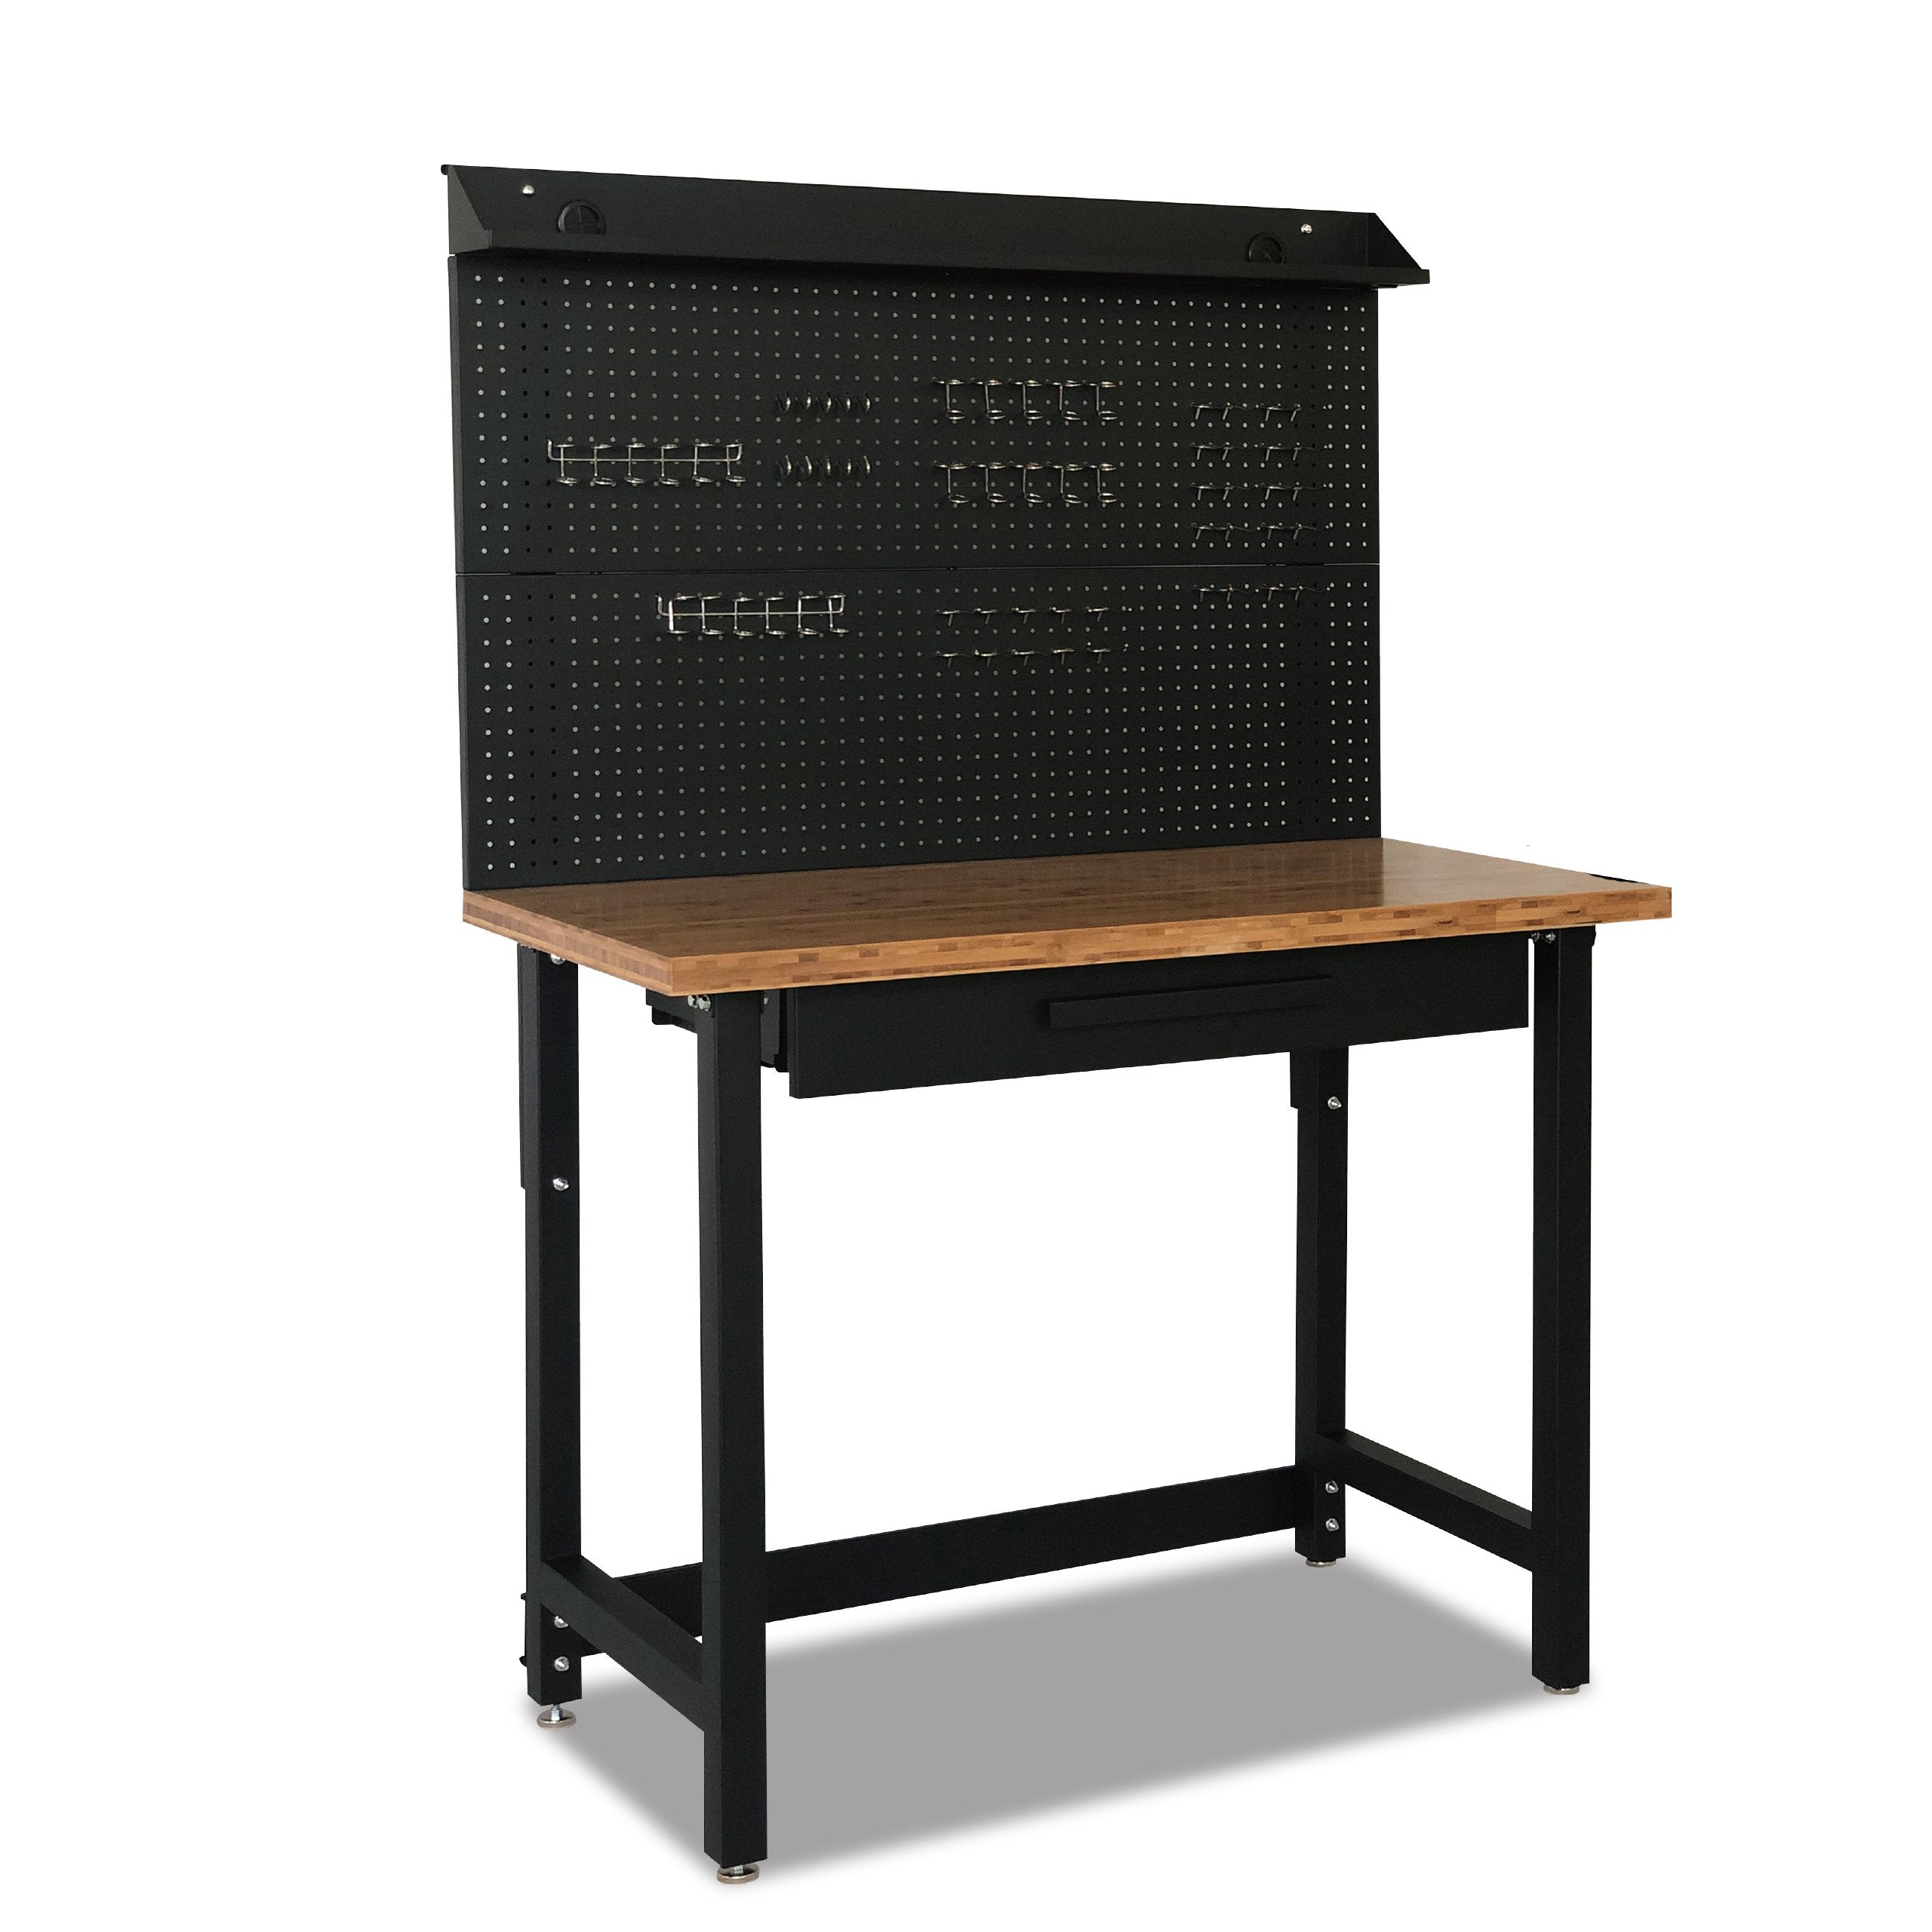 "48"" Bamboo Workbench with Pegboard and Drawer - Heavy-Duty Powder-Coated Steel Frame, 500 Lbs Weight Capacity"